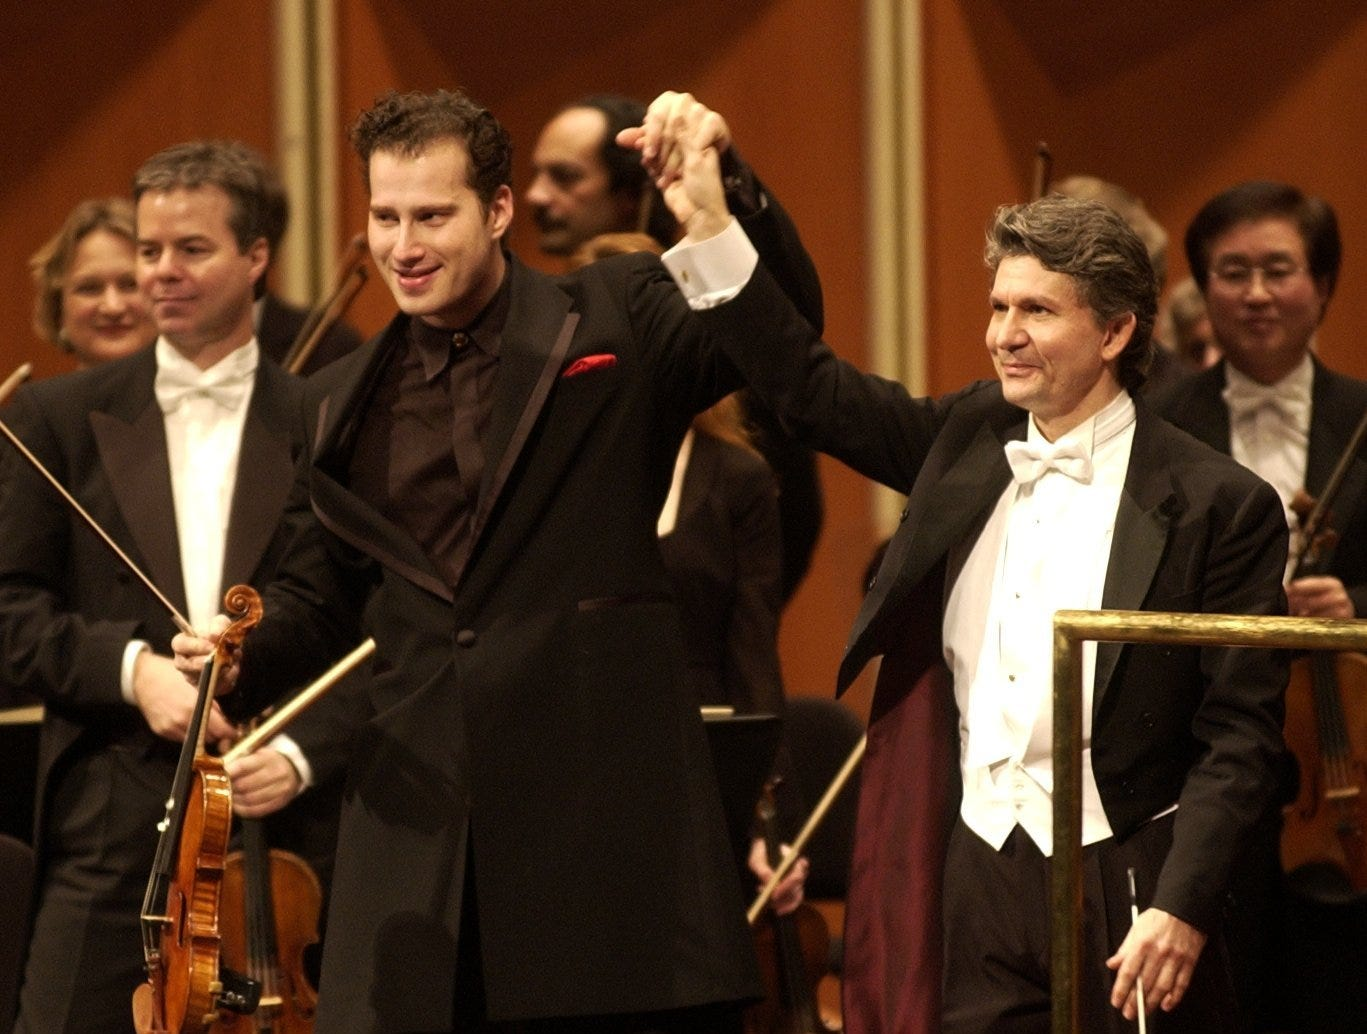 Andreas Delfs, Milwaukee Symphony Orchestra conductor, right, and guest soloist violinist Nikolaj Znaider take a curtain call after performing Friday, Feb. 6, 2004, at the Marcus Performing Arts Center. Znaider, 28, lived in Denmark before moving to New York.